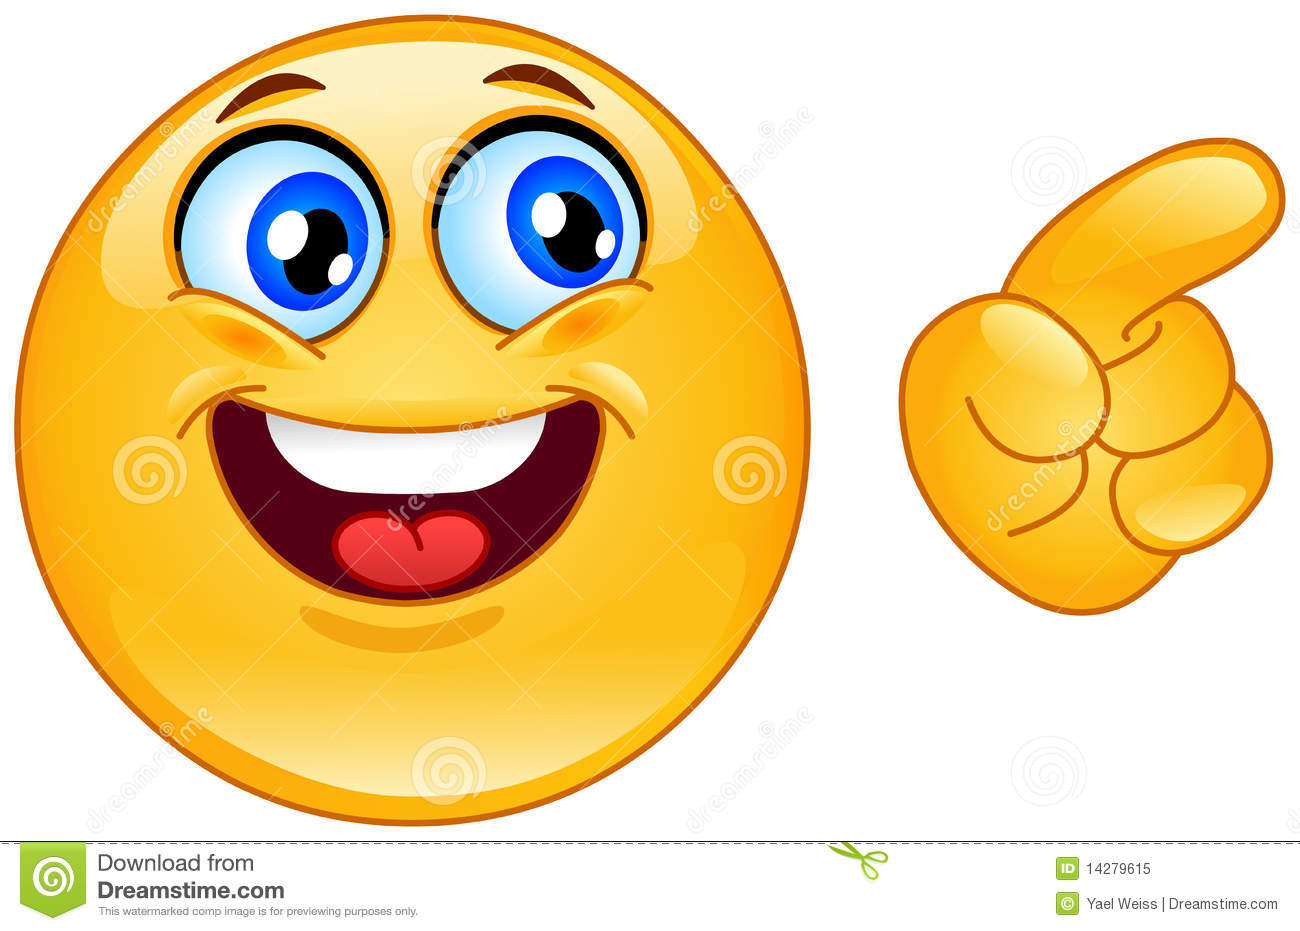 Animated Laughing smiley